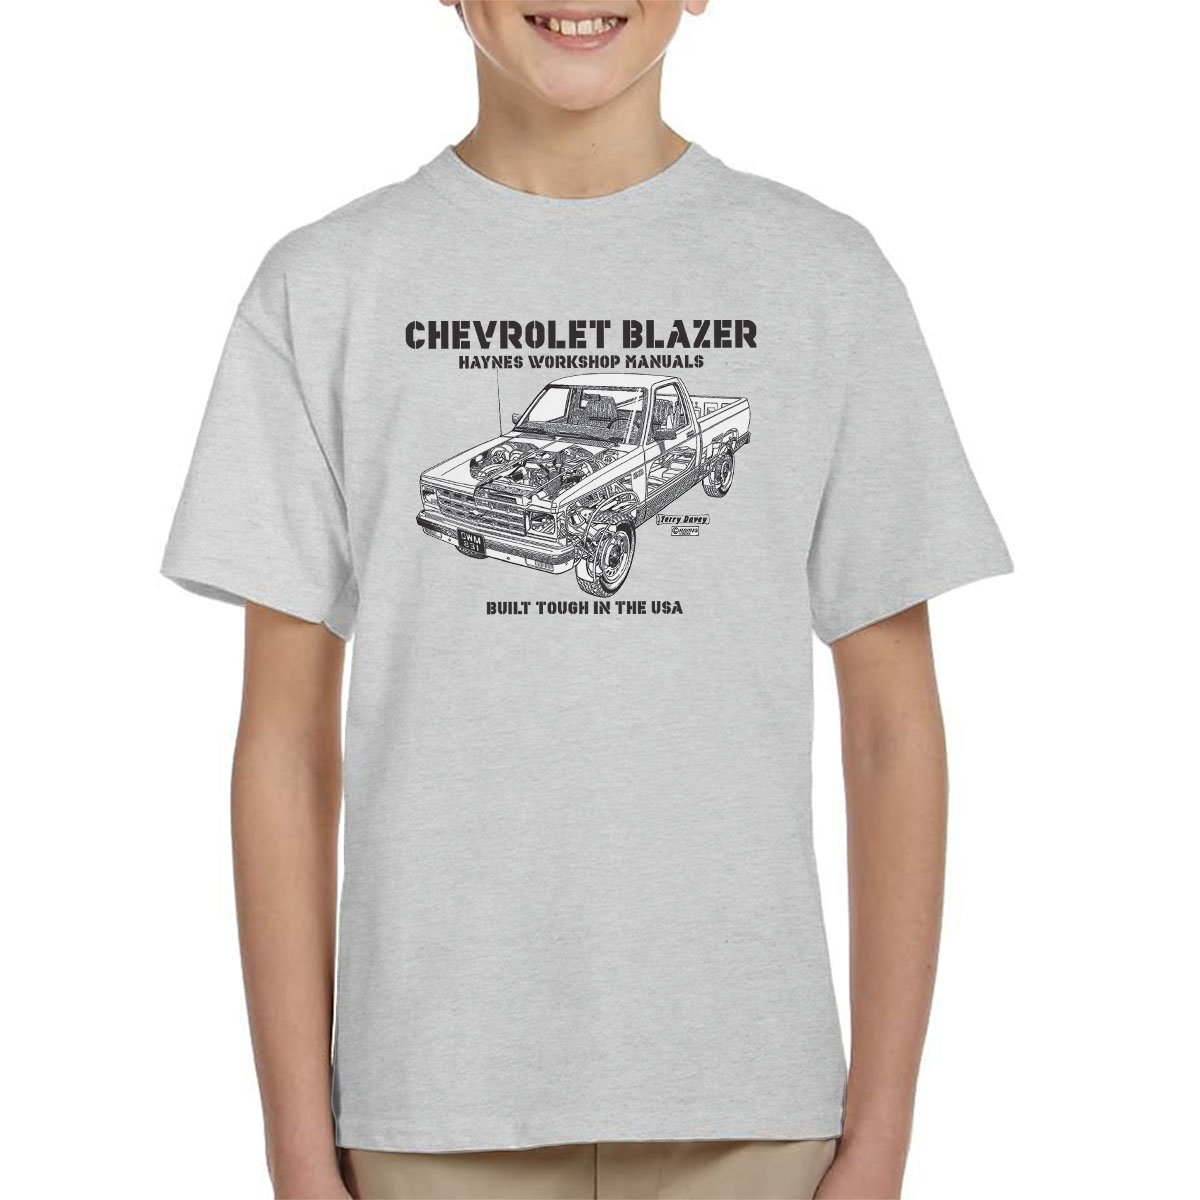 Haynes Owners Workshop Manual Chevrolet Blazer Black Kid's T-Shirt